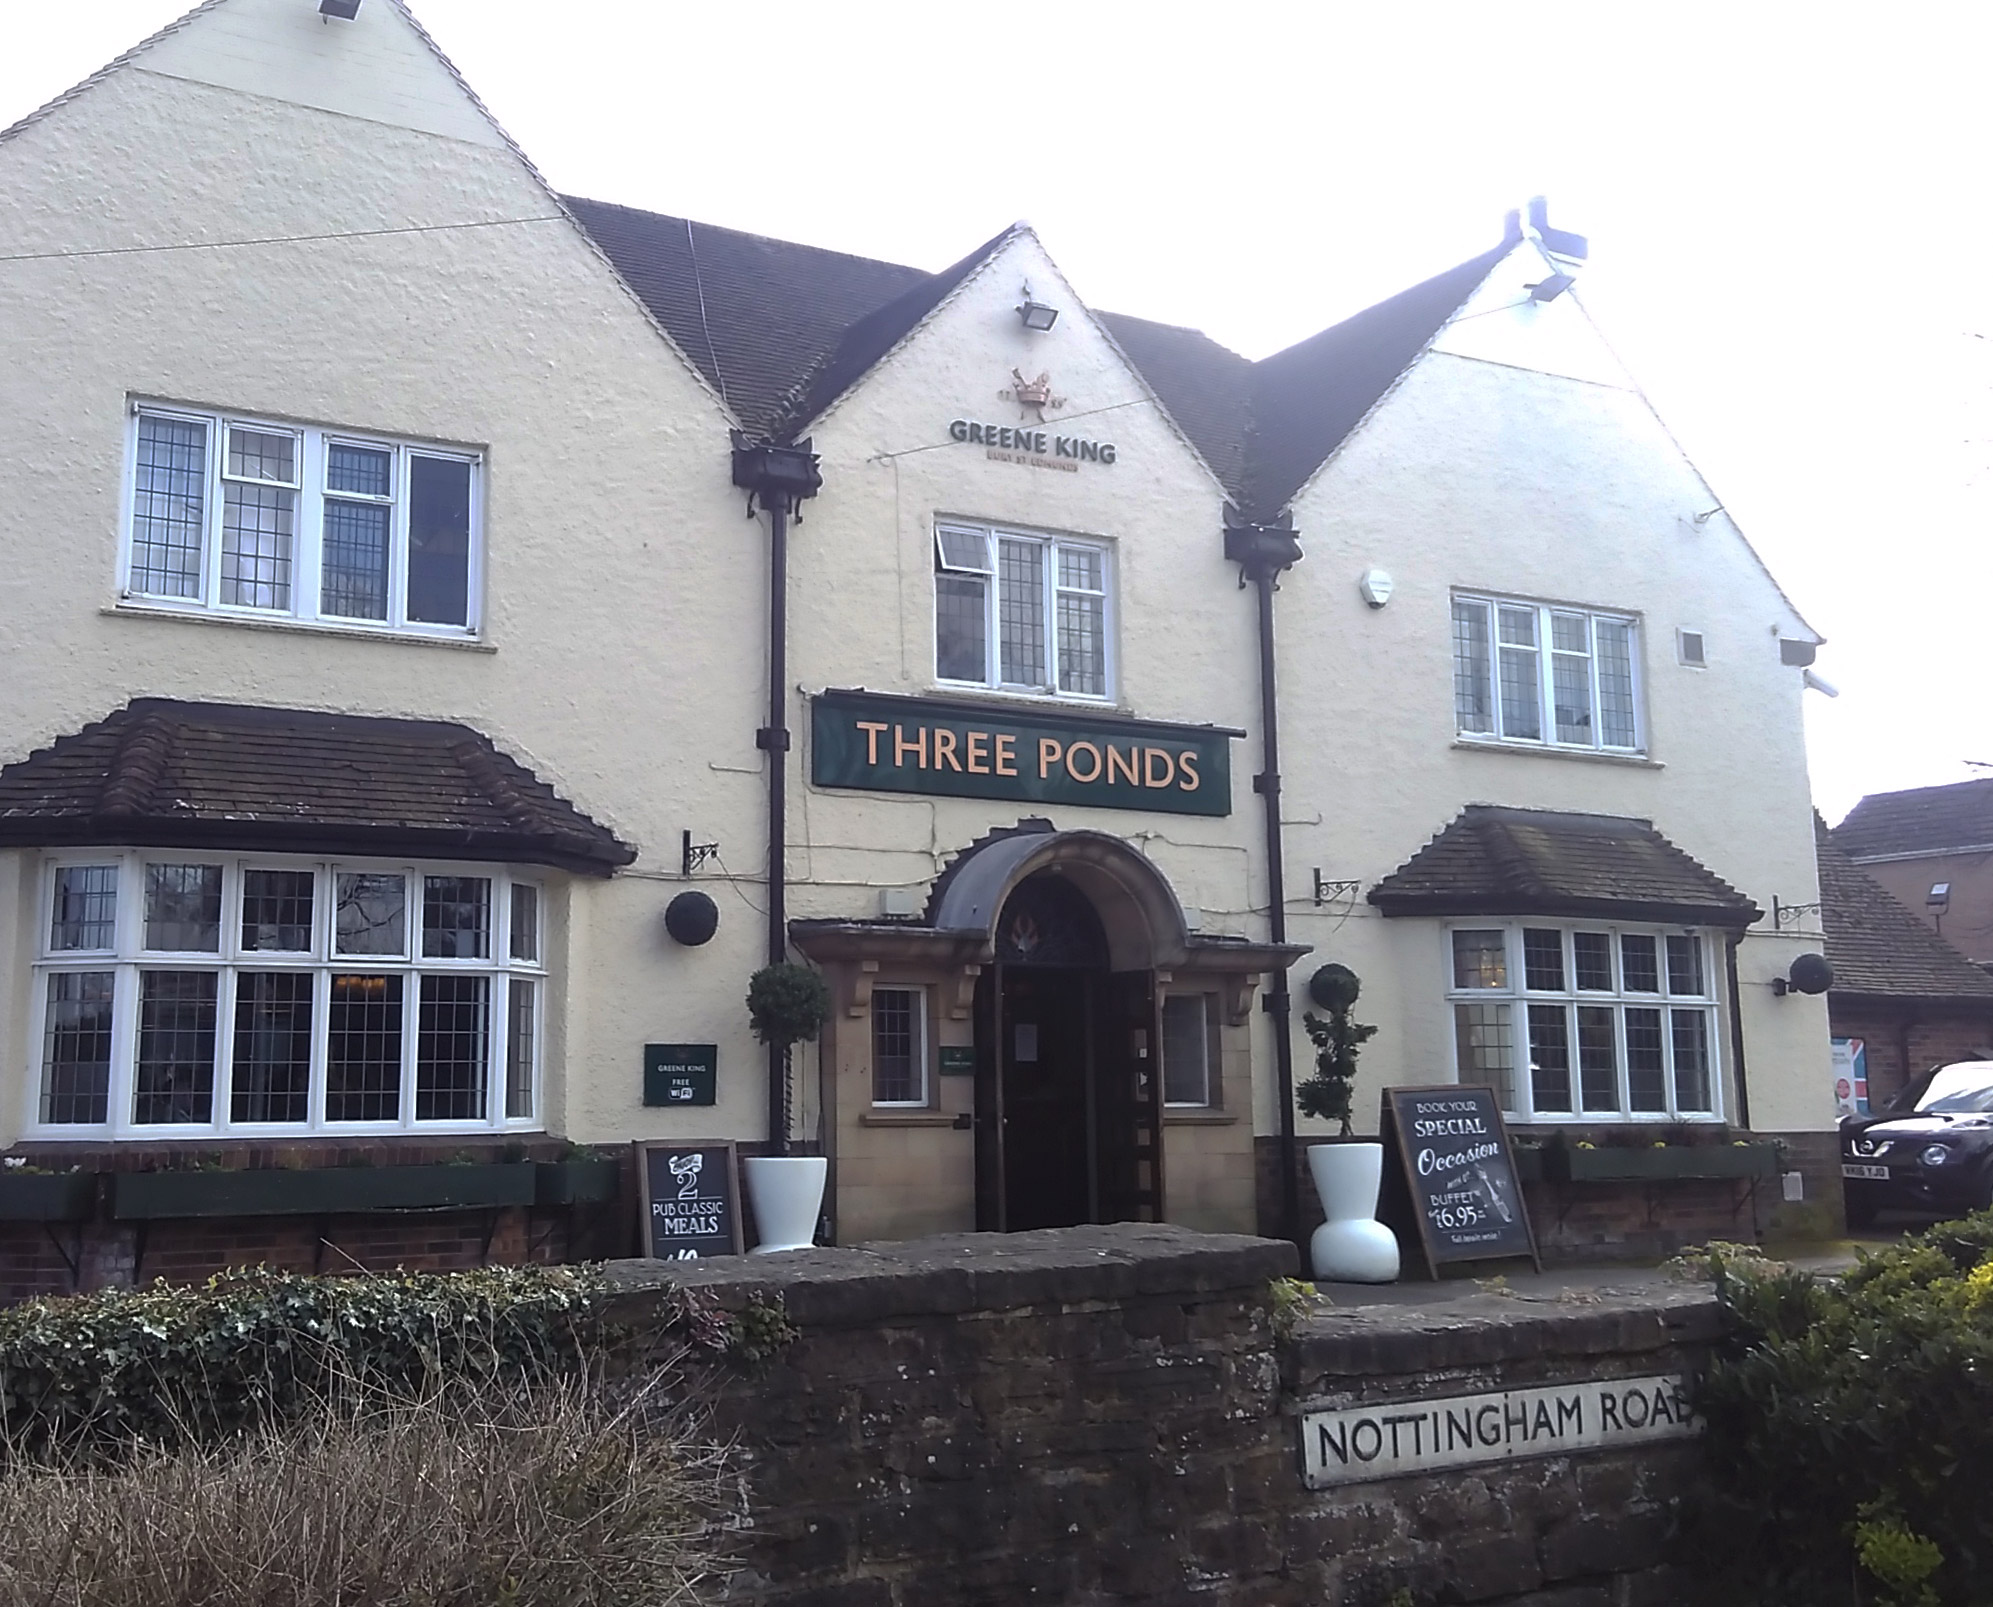 Three Ponds Pub in Nuthall